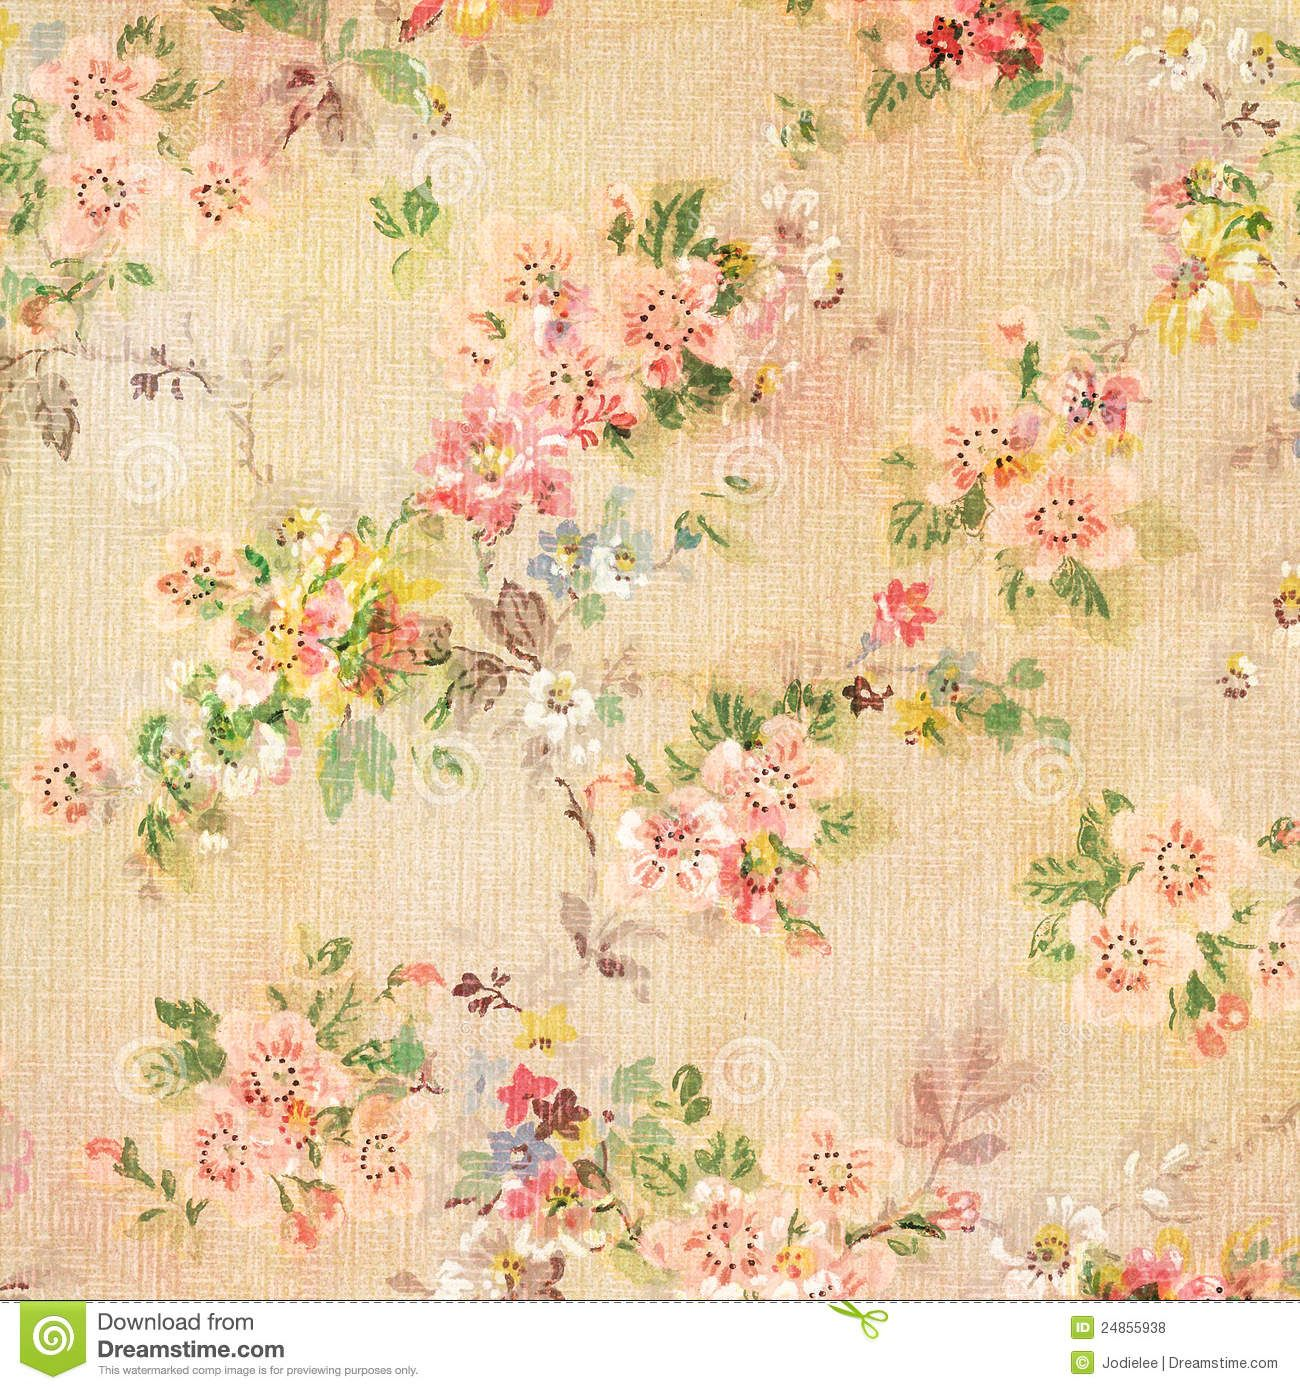 Shabby Chic Vintage Antique Rose Floral Wallpaper Shabby Chic Wallpaper Chic Wallpaper Vintage Shabby Chic